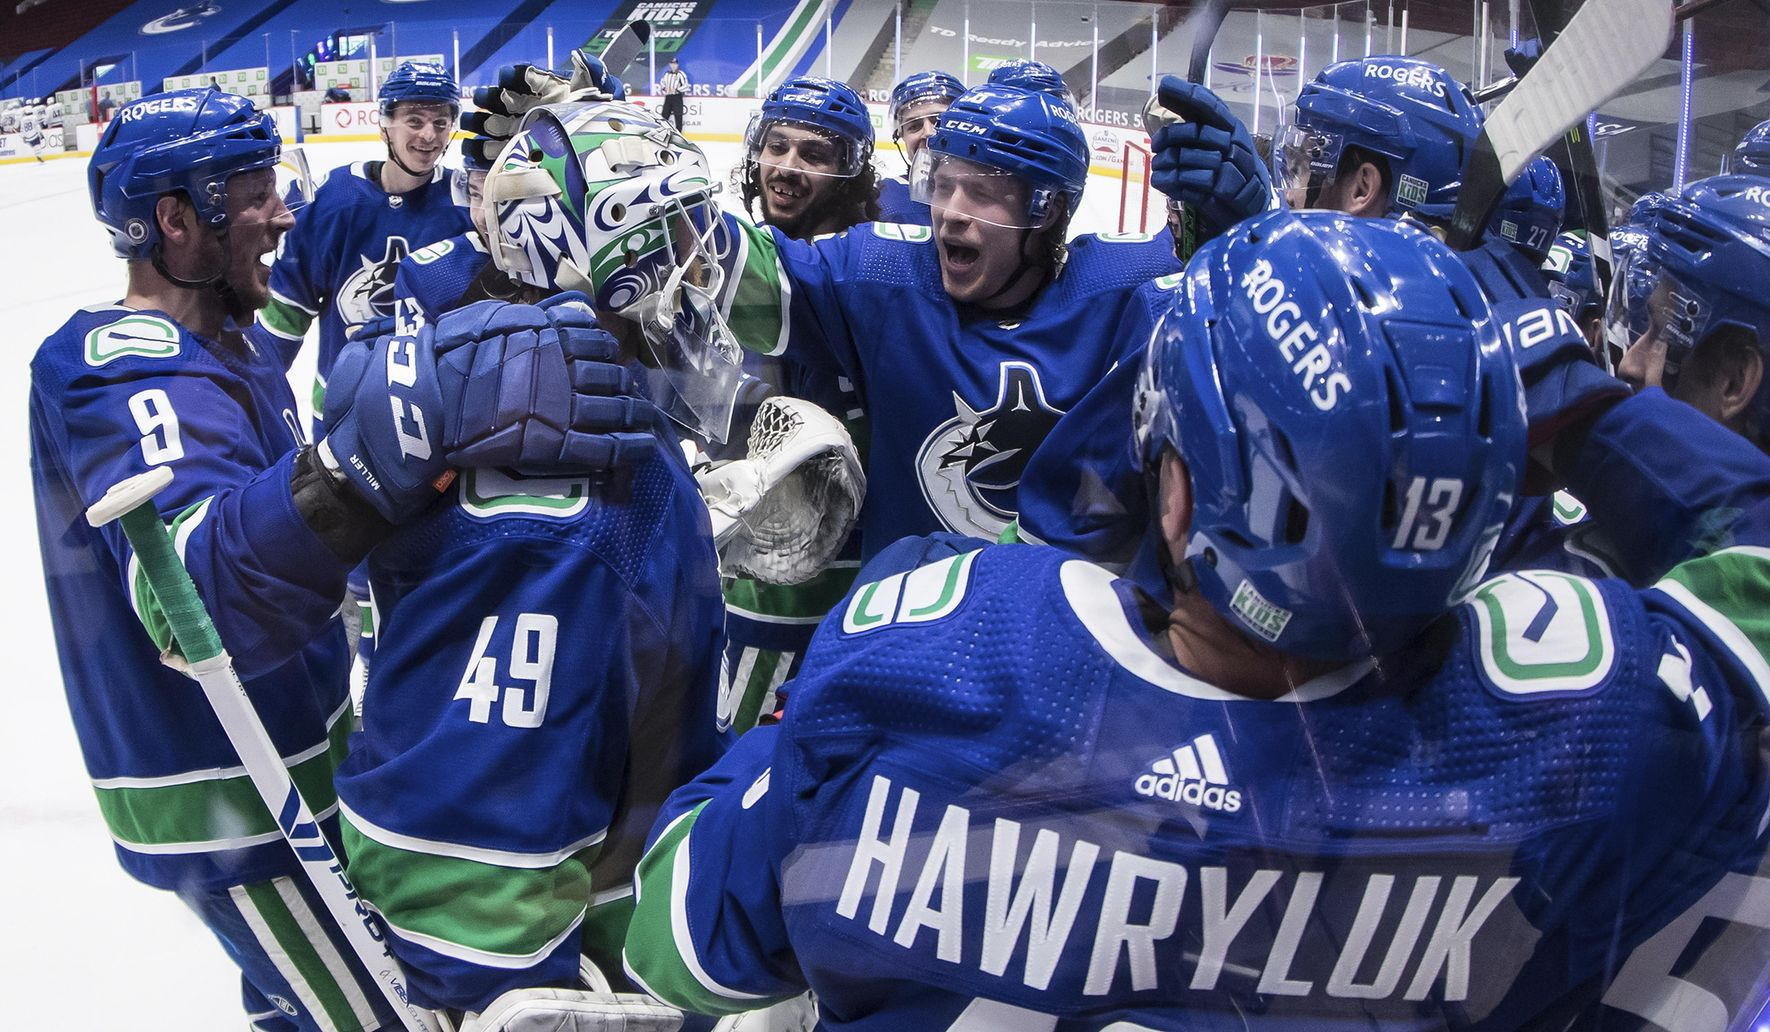 Canucks top Leafs 3-2 in OT in return from COVID layoff